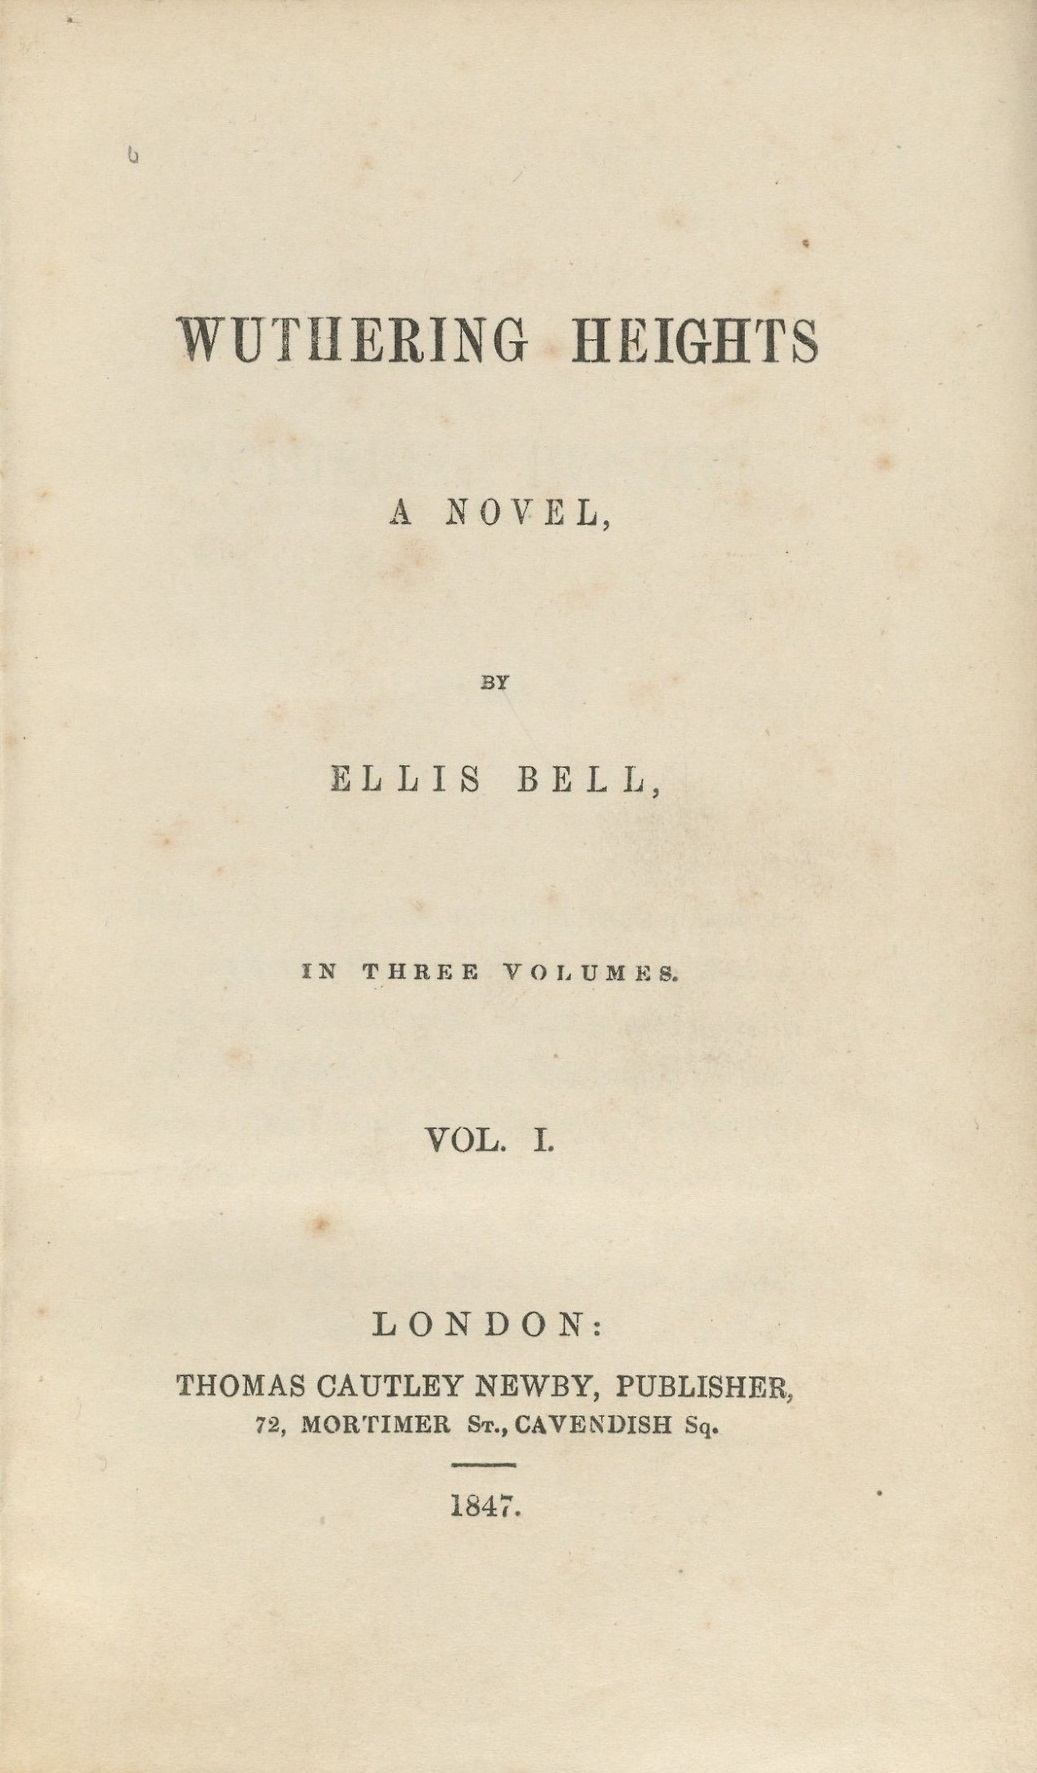 Brontë, Emily. Wuthering Heights . London: Thomas Cautley Newby. 1847.